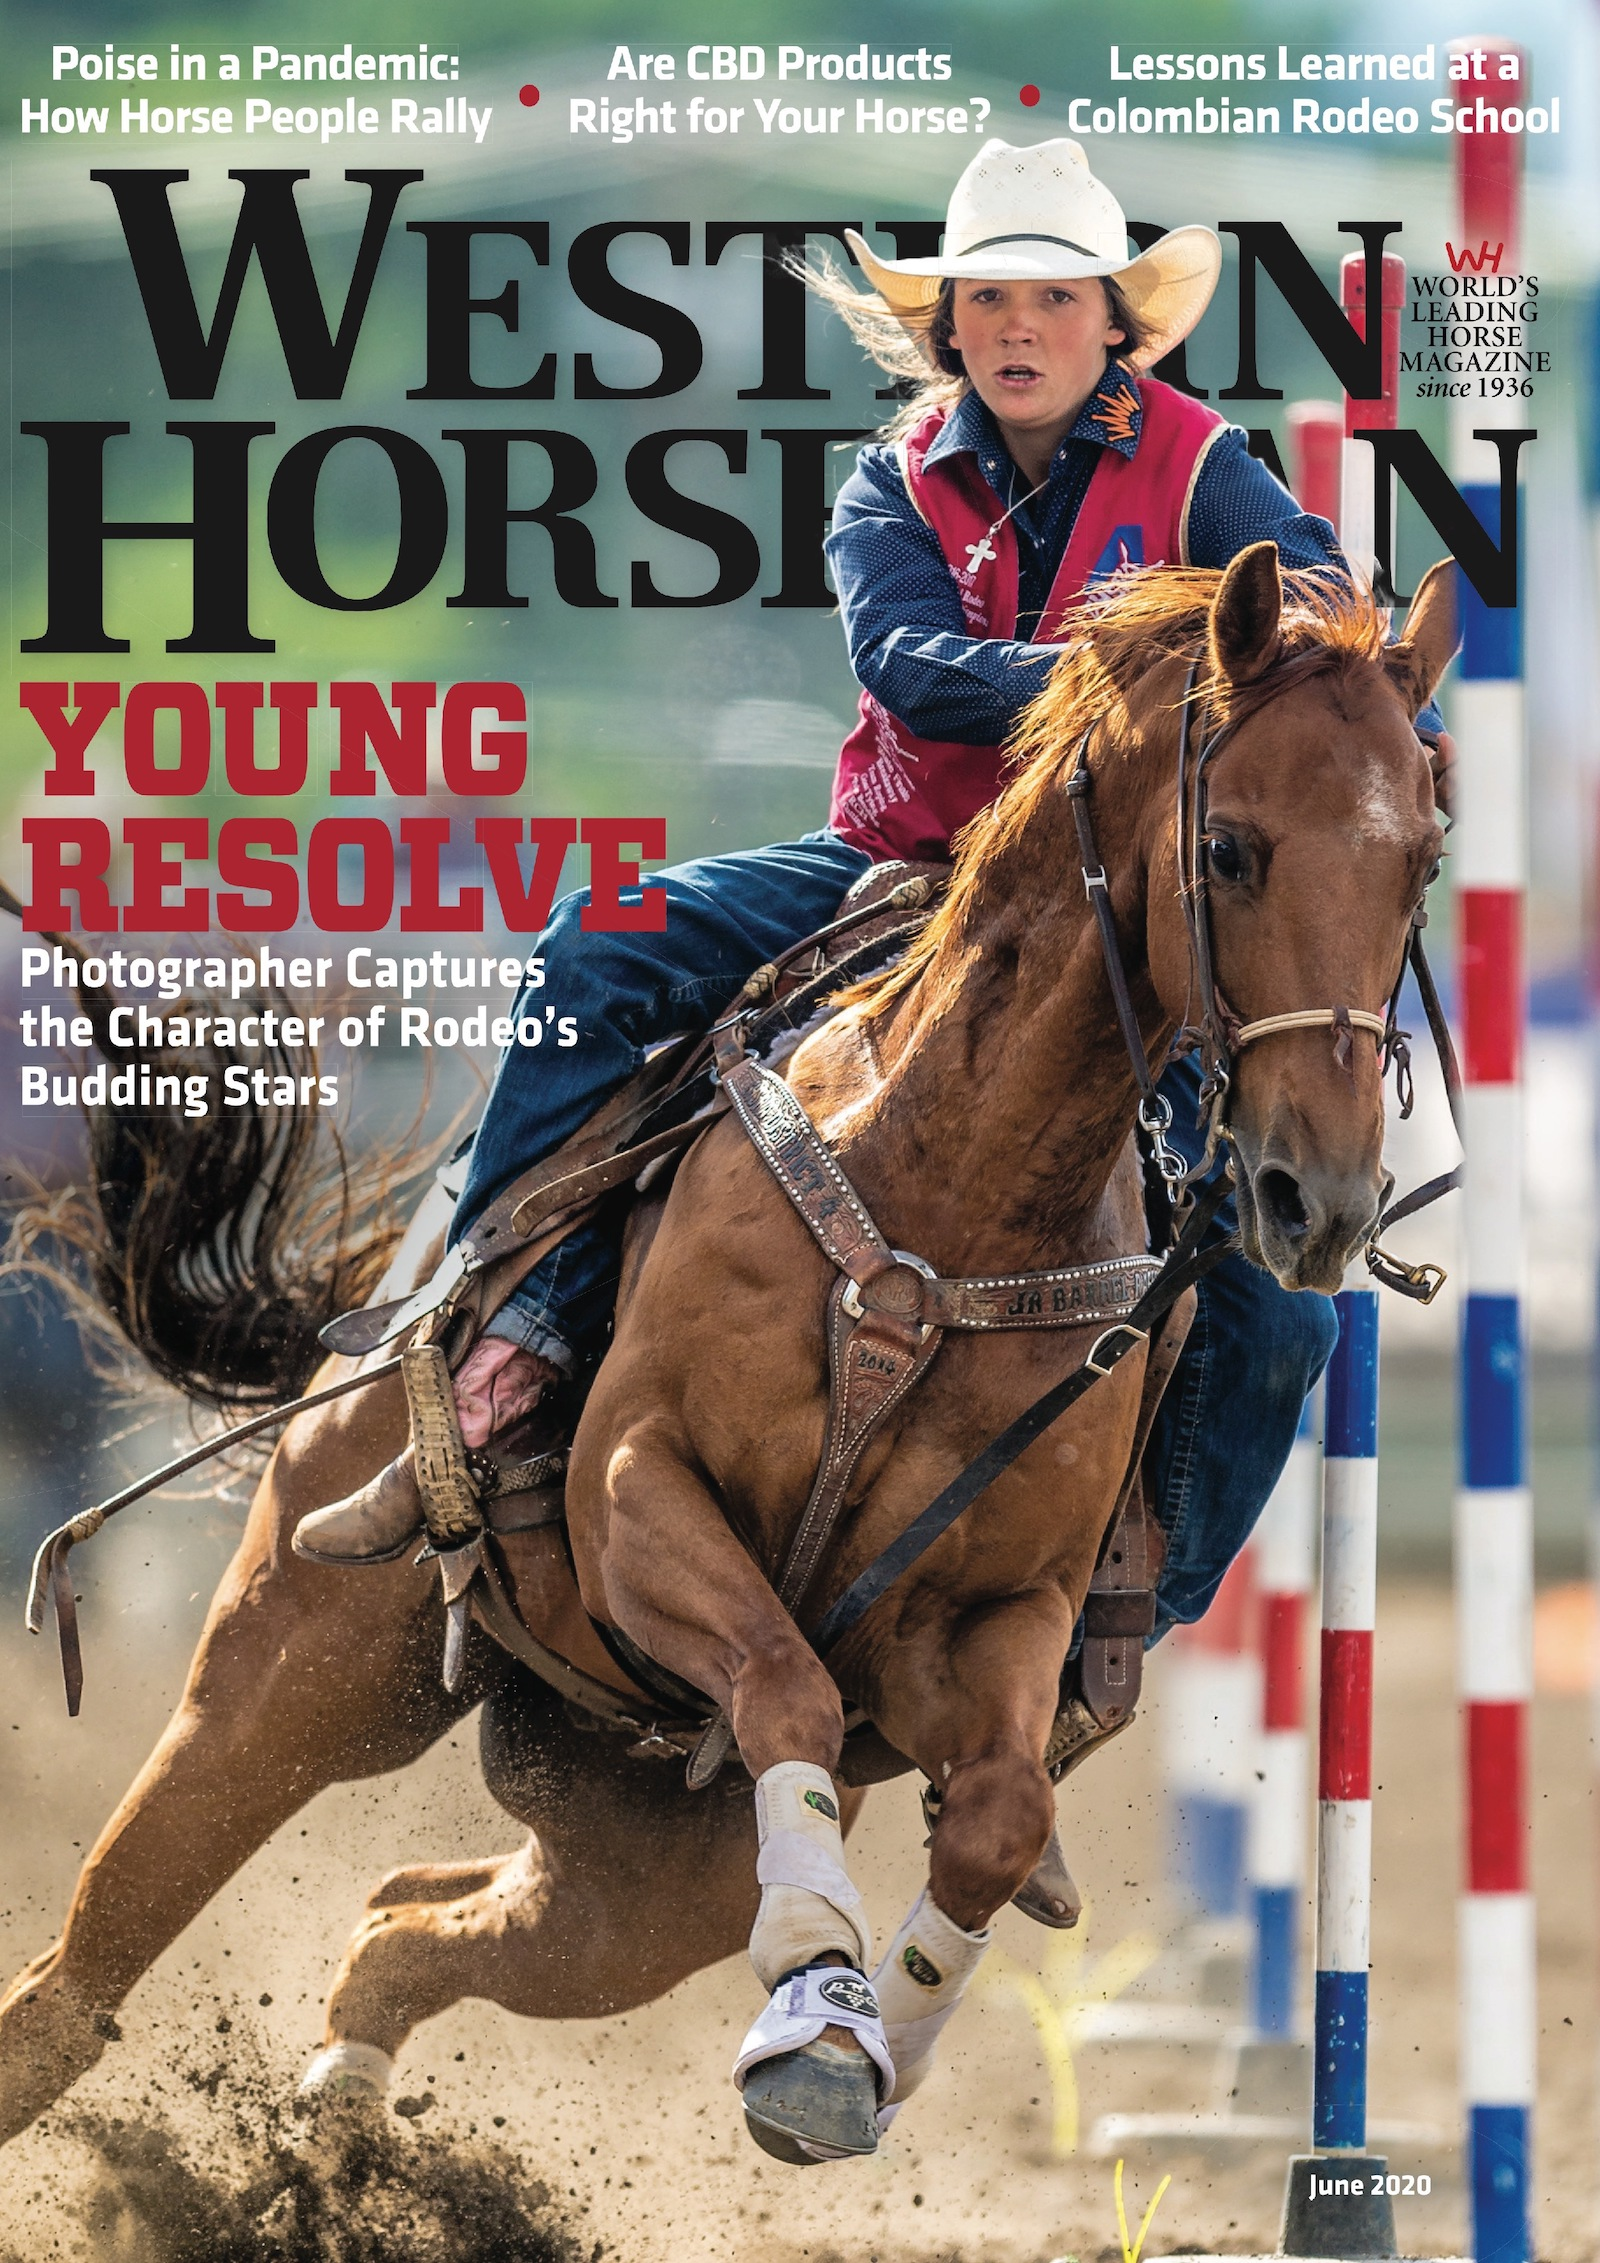 Western Horseman magazine June 2020 cover